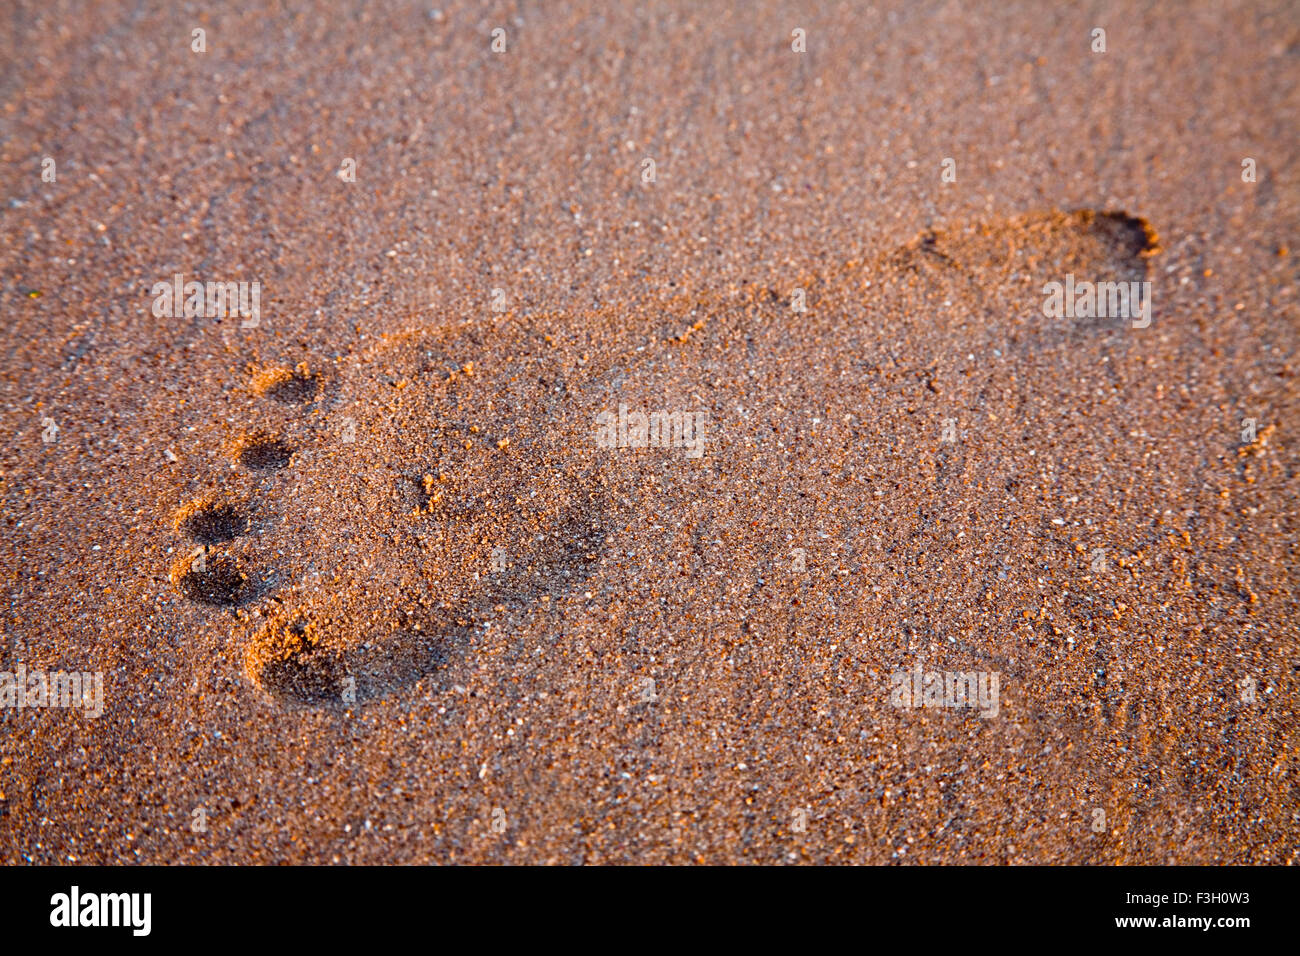 Big Print Stock Photos Images Alamy Byo Concert Medium In Sand Footmark On Texture Aksa Beach Malad Bombay Mumbai Maharashtra